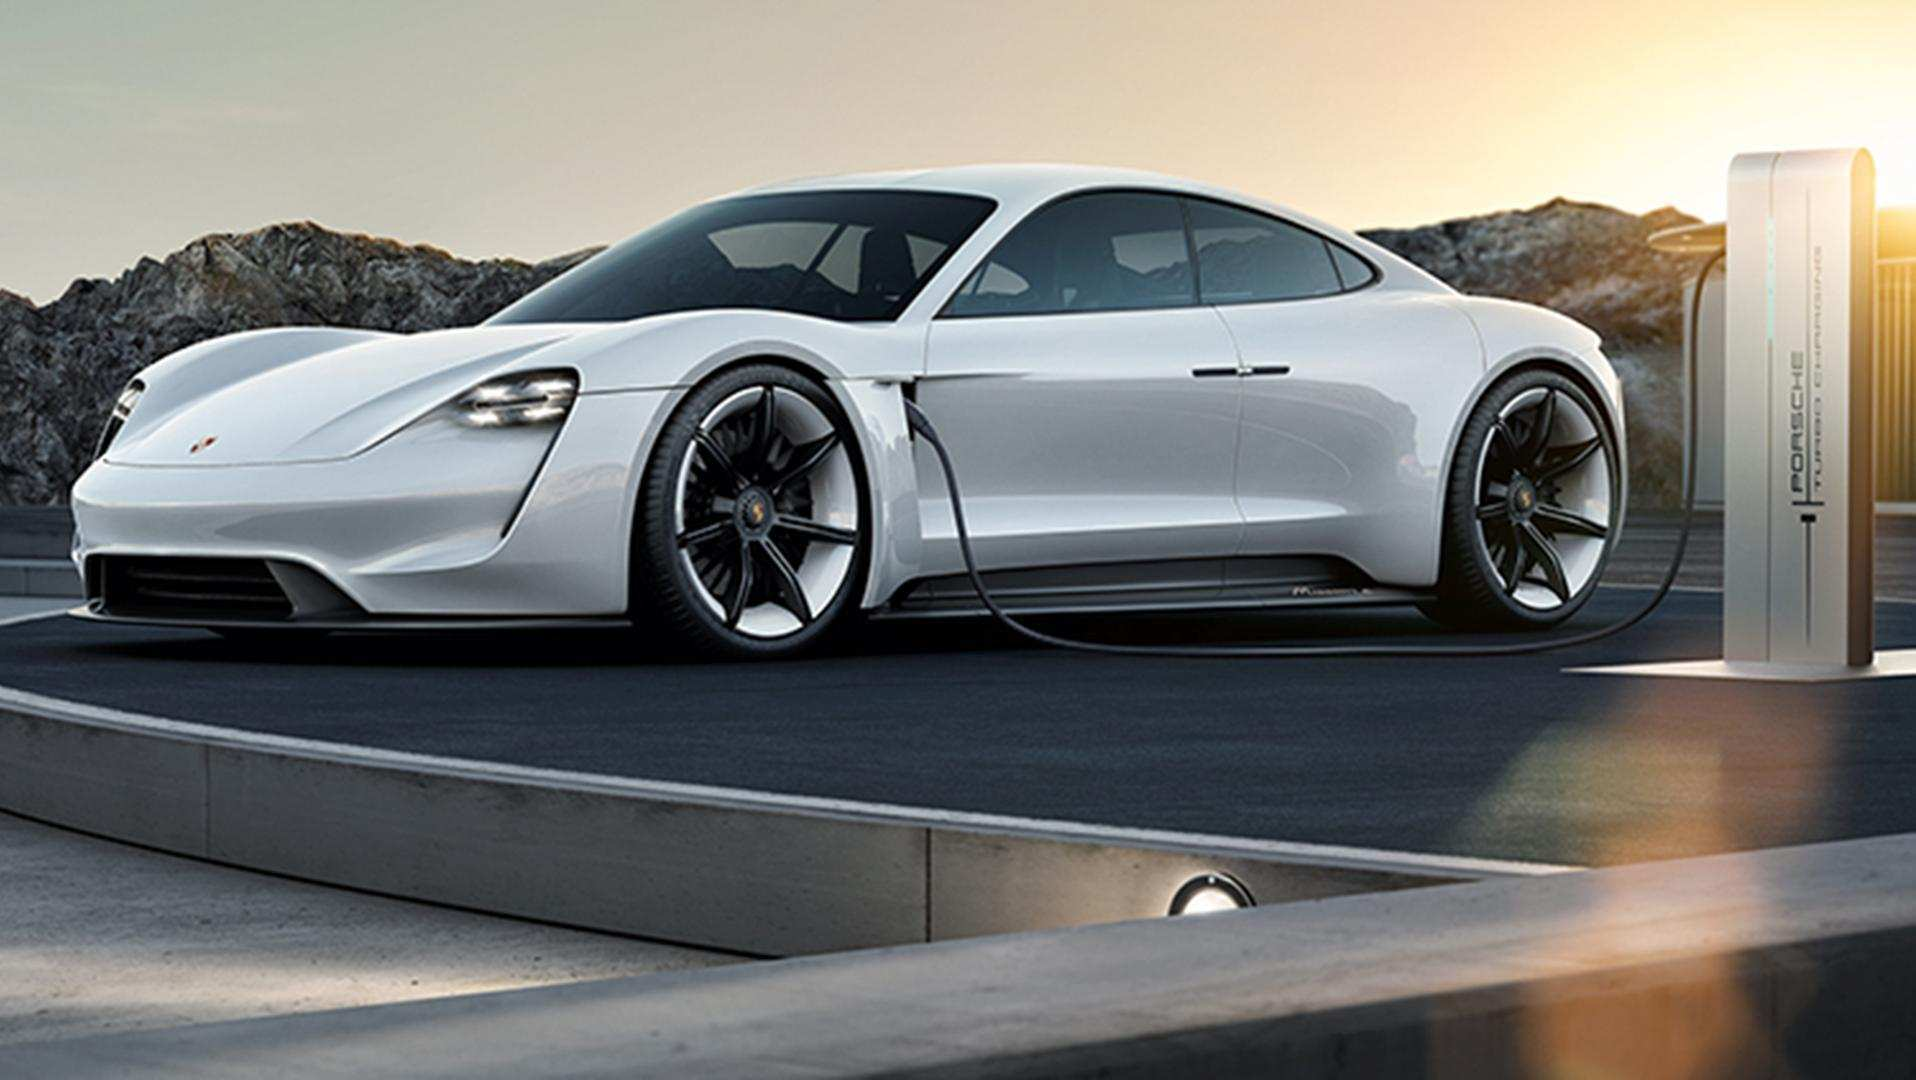 17 Concept of 2020 Porsche Mission E Exterior for 2020 Porsche Mission E